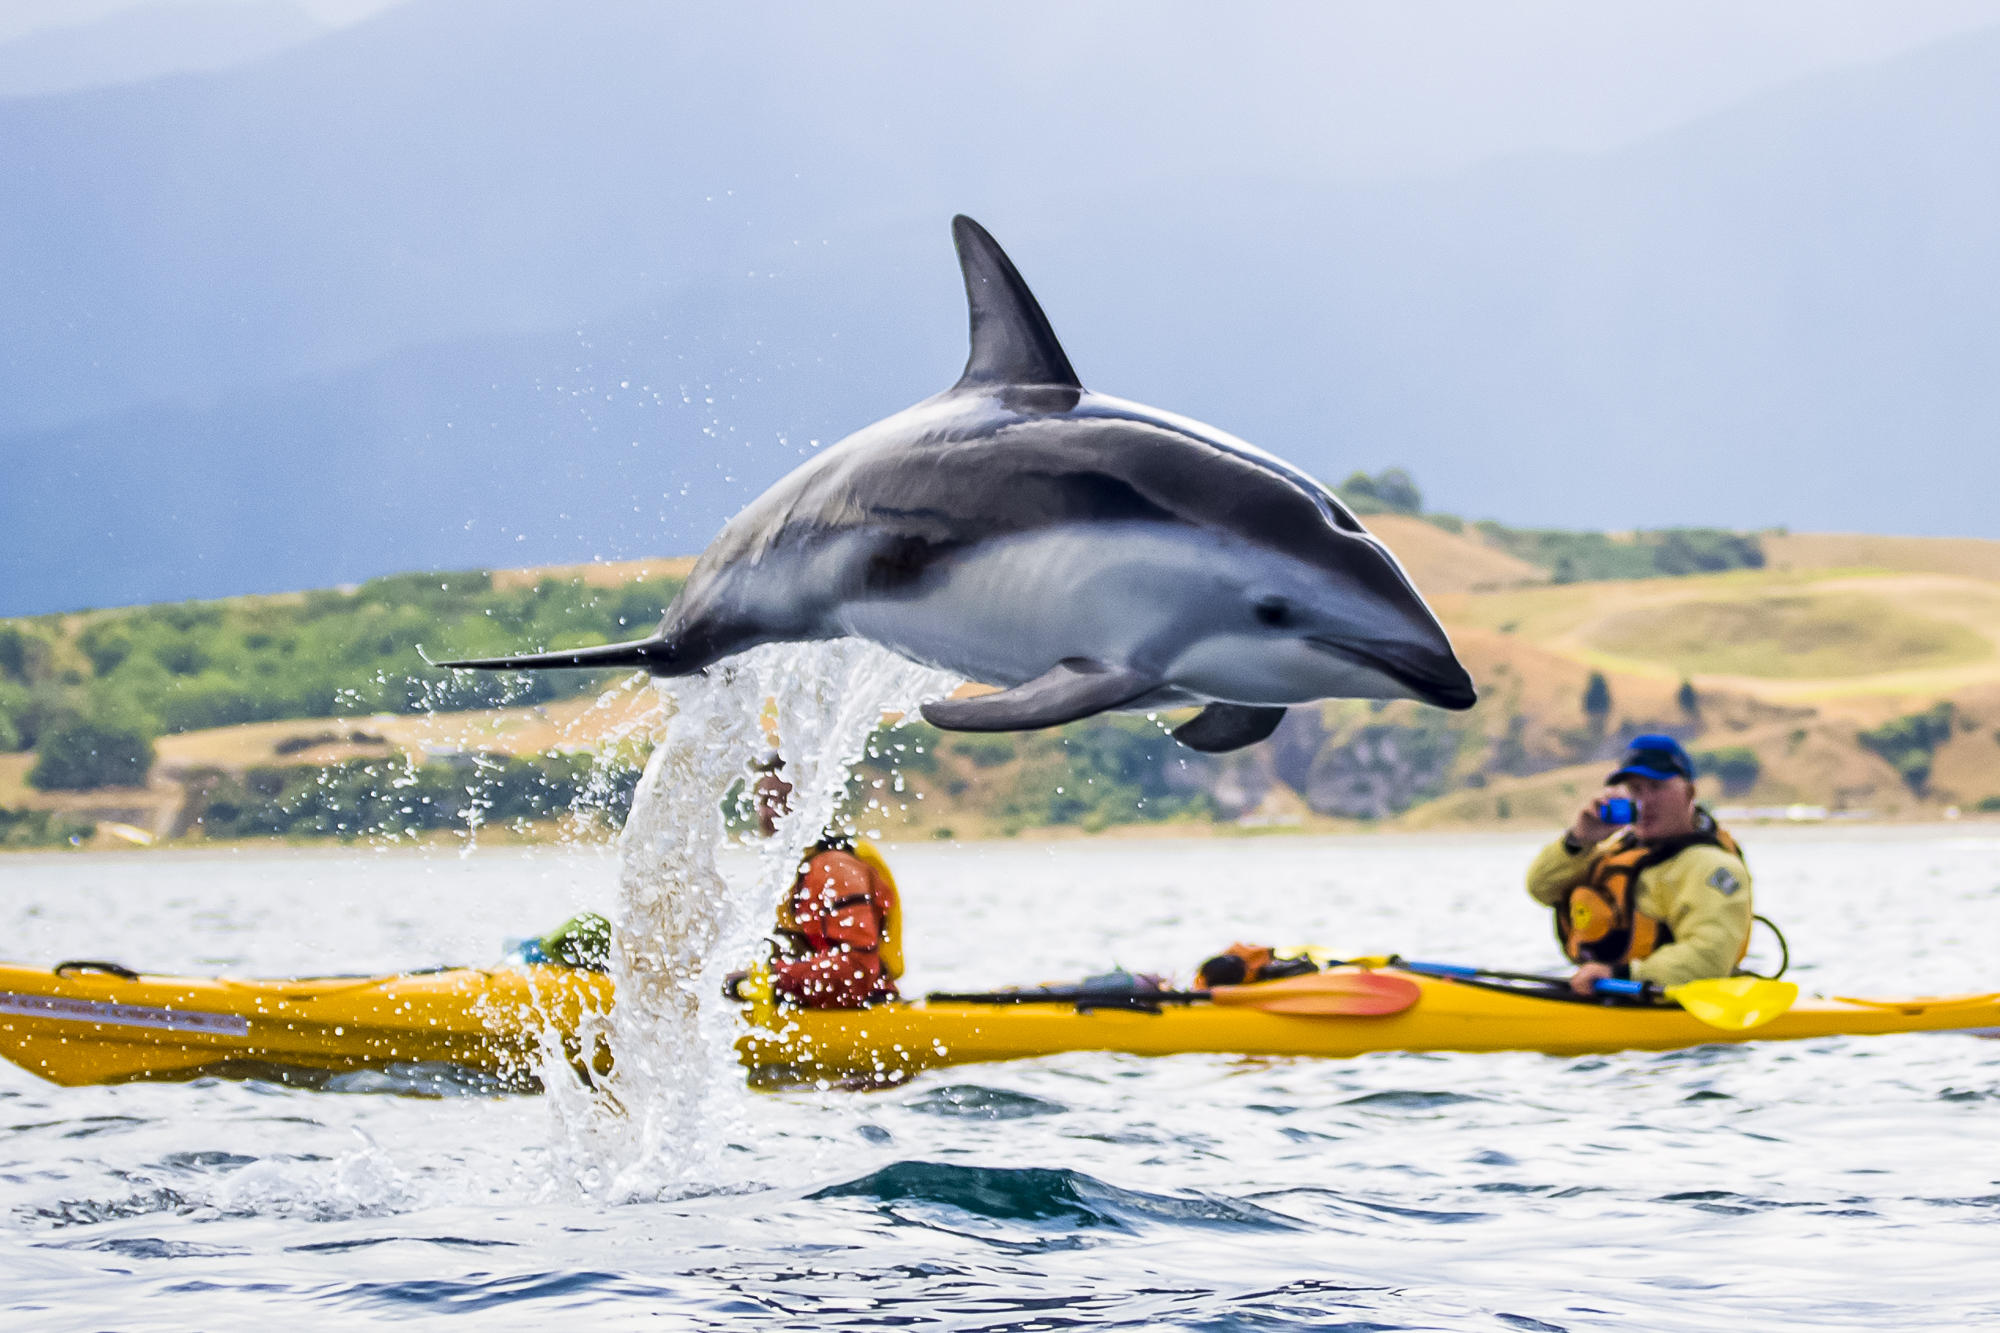 Sea kayakers have close encounters with the Fur Seals, Blue Pengiuns and Dusky Dolphins along the Kaikoura coastline.